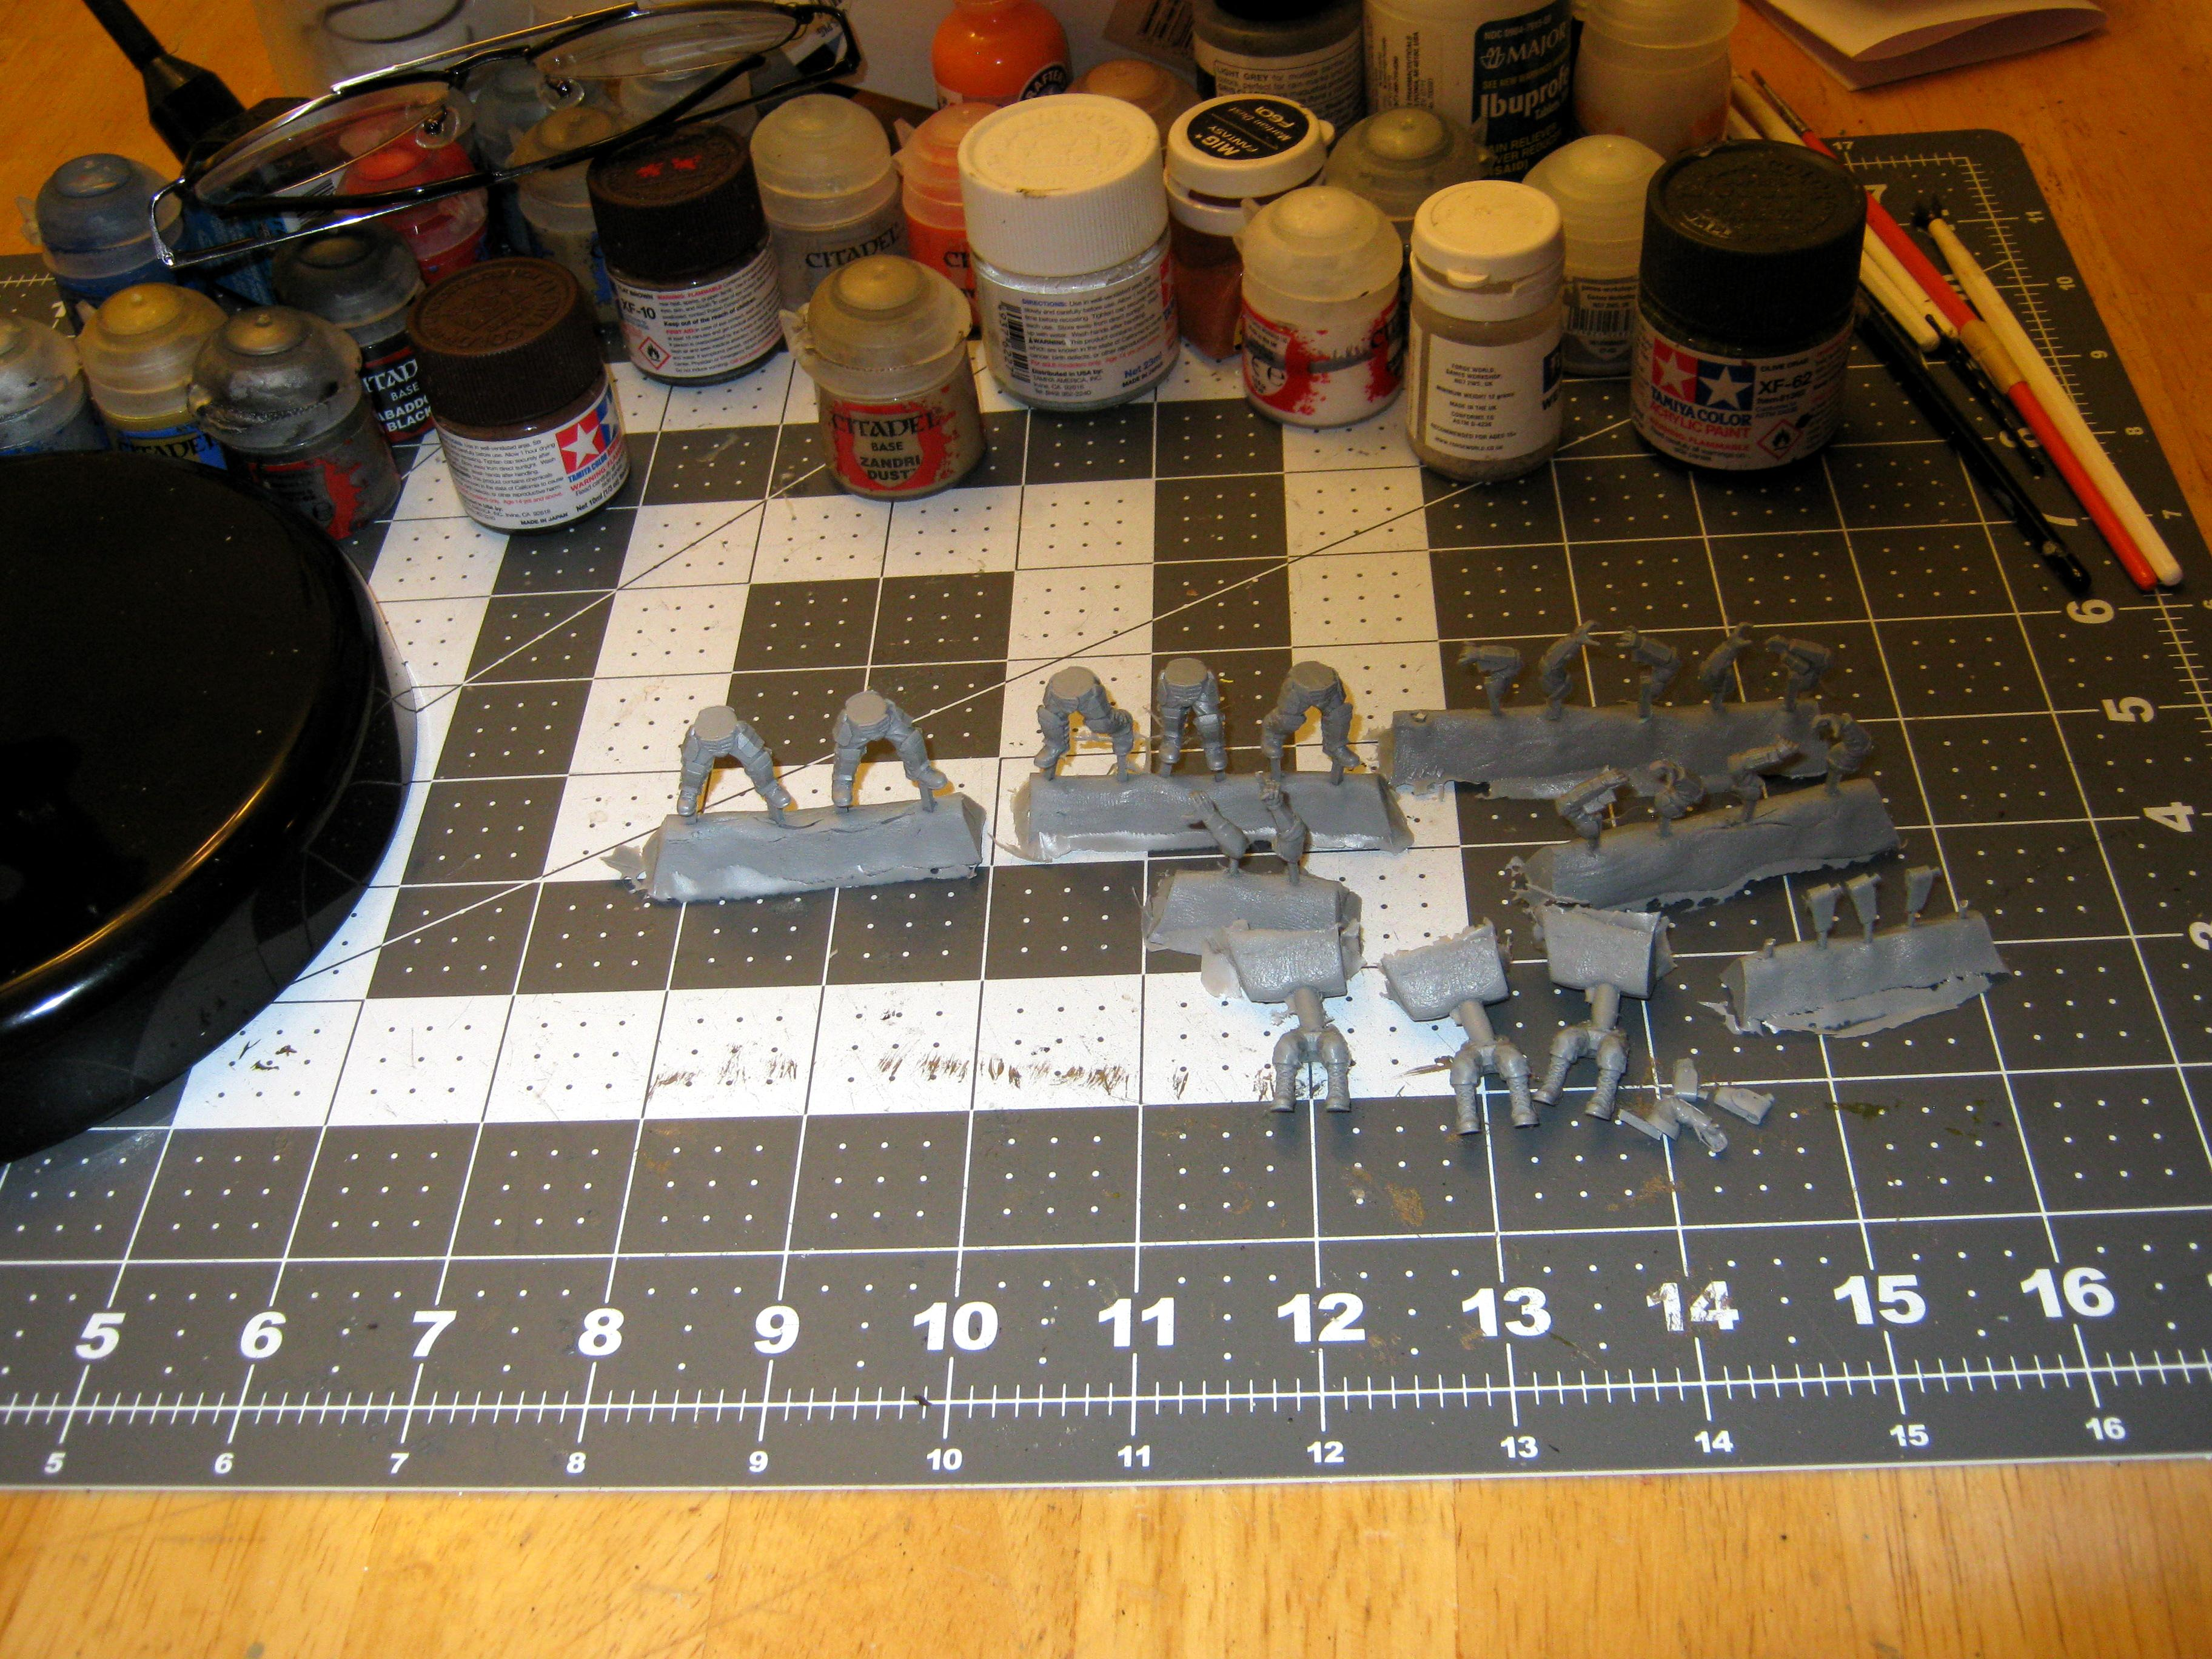 Mad Robot Miniatures, Materials, Modeling, Painting, Supplies